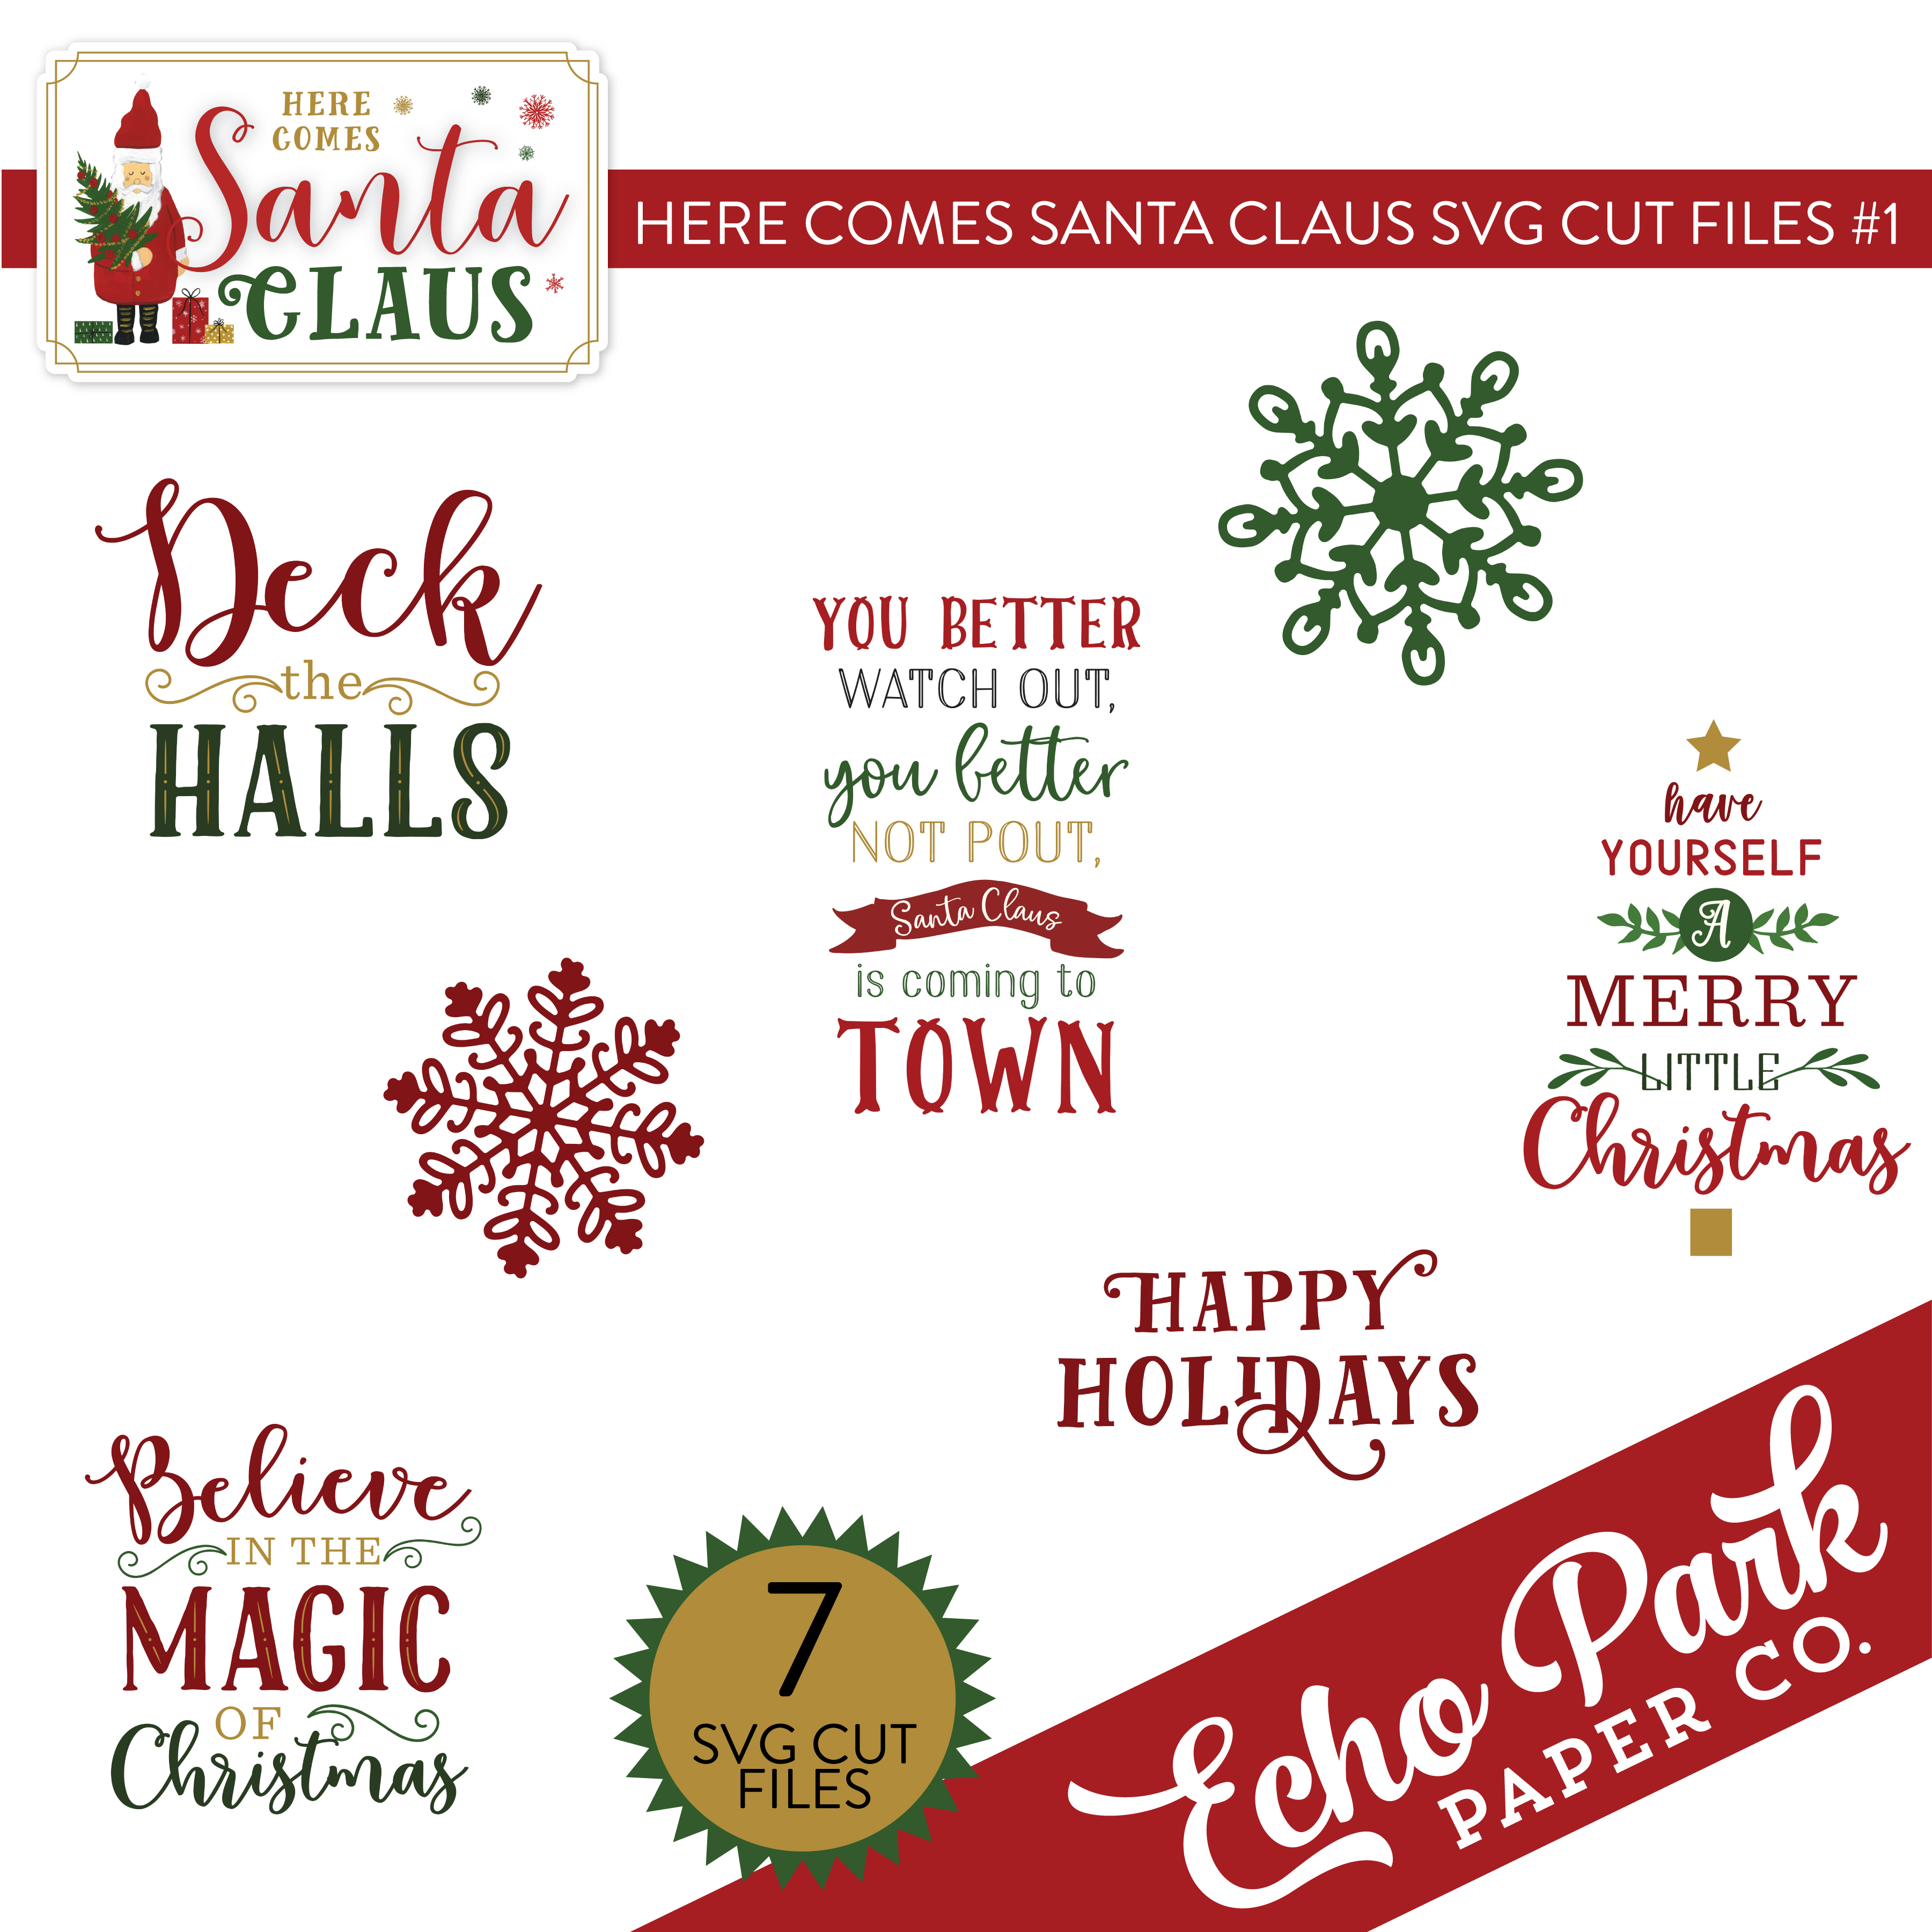 Here Comes Santa Claus SVG Cut Files #1